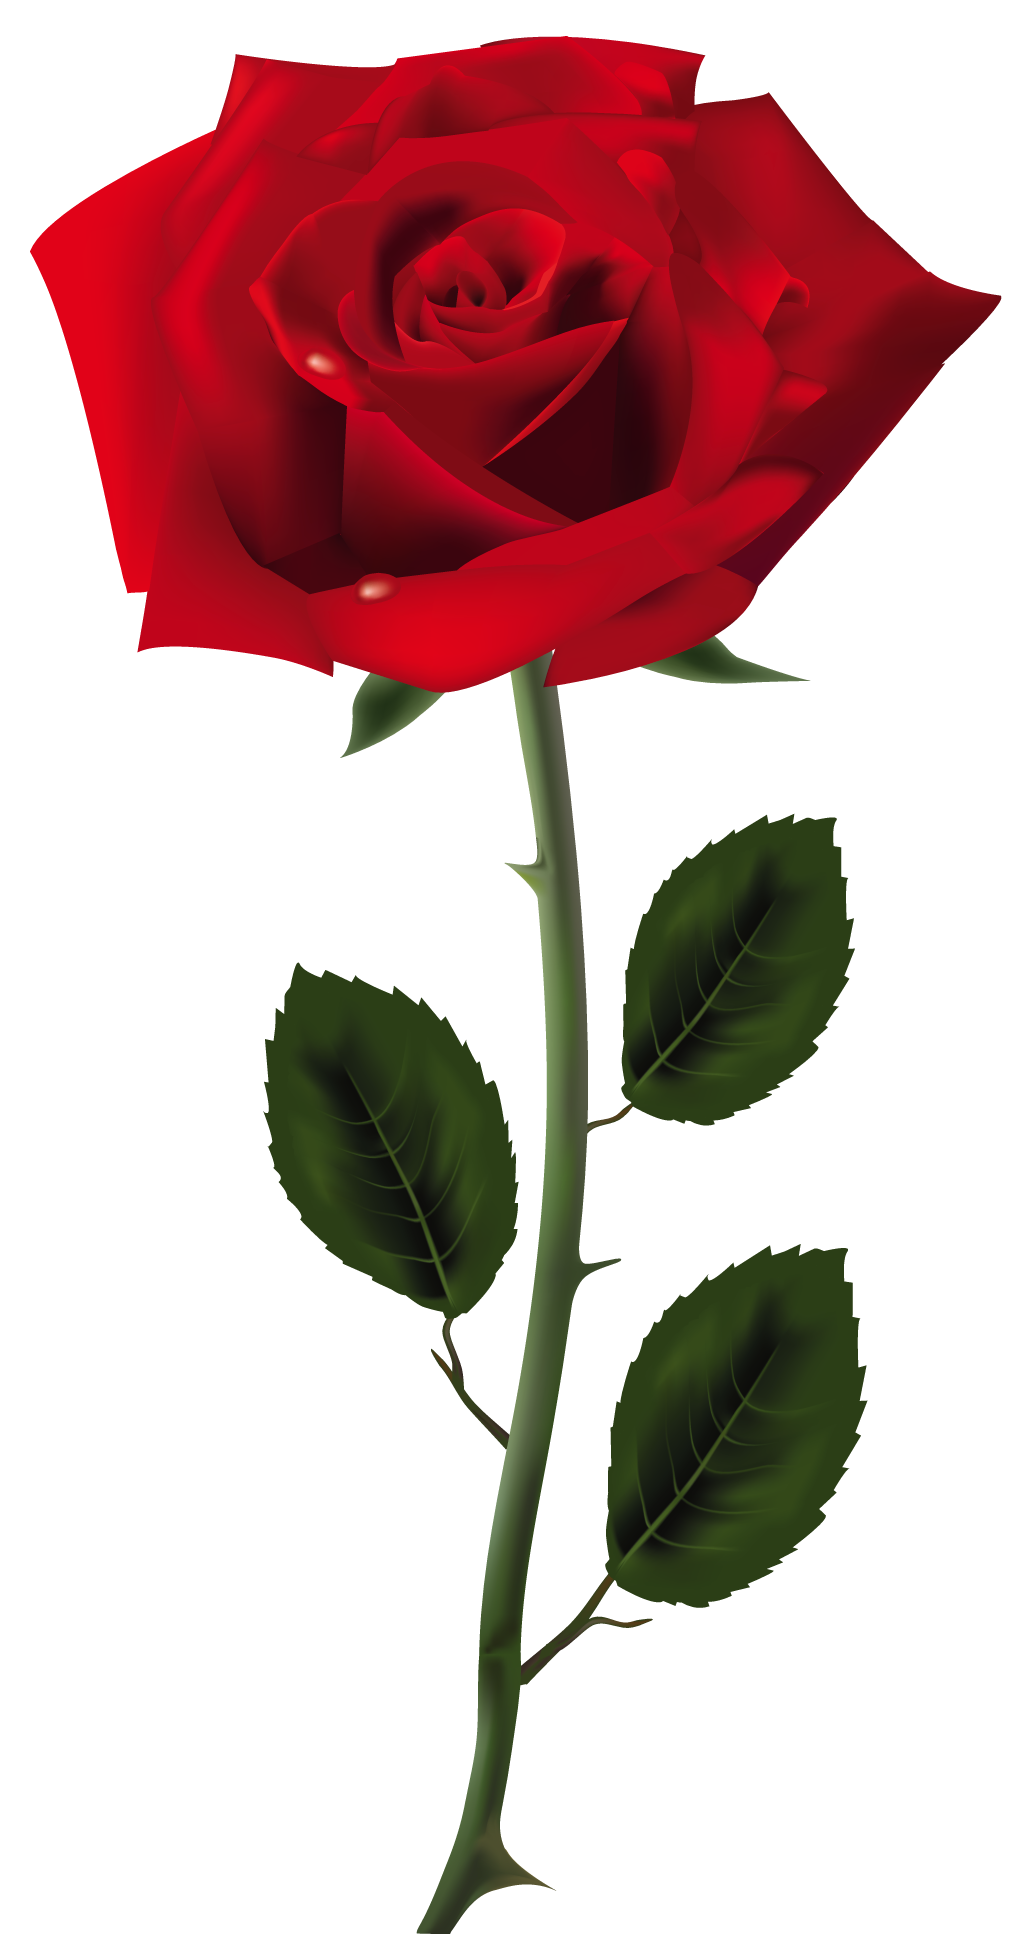 Rosas 4k png. Rose transparent pictures free